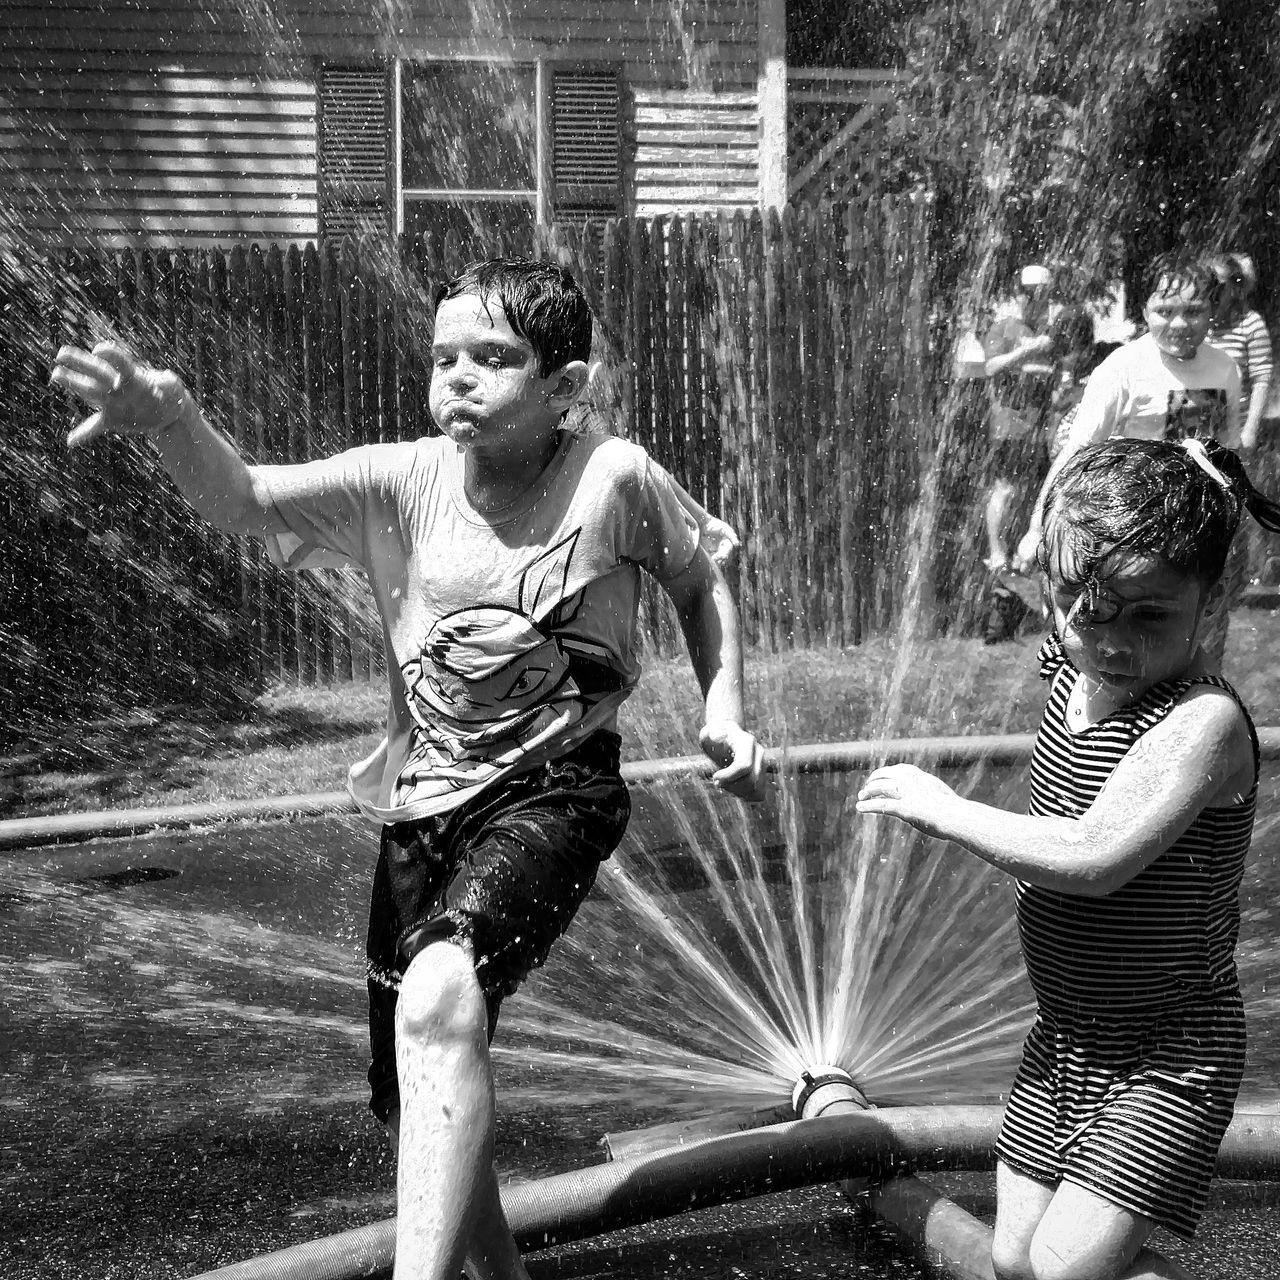 water, spraying, real people, motion, outdoors, casual clothing, splashing, two people, day, sprinkler, leisure activity, lifestyles, childhood, boys, standing, girls, togetherness, building exterior, young adult, nature, people